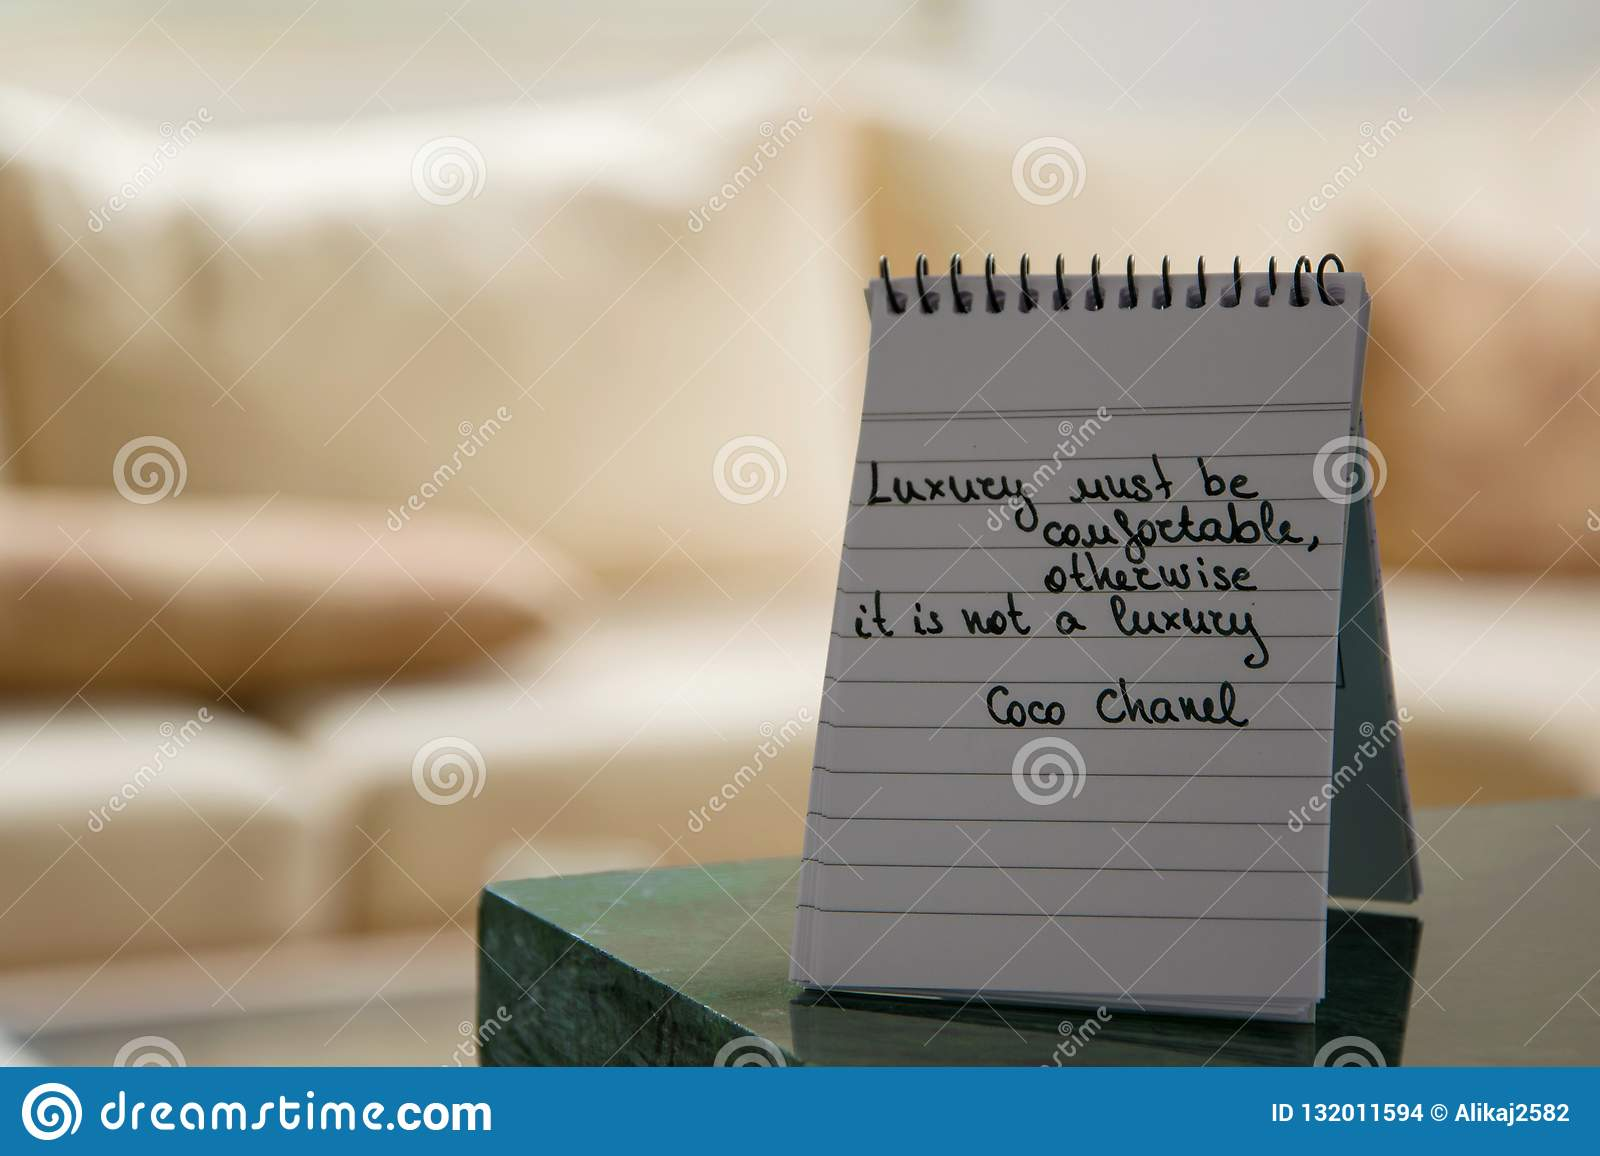 Coco Chanel quotes written on a block note